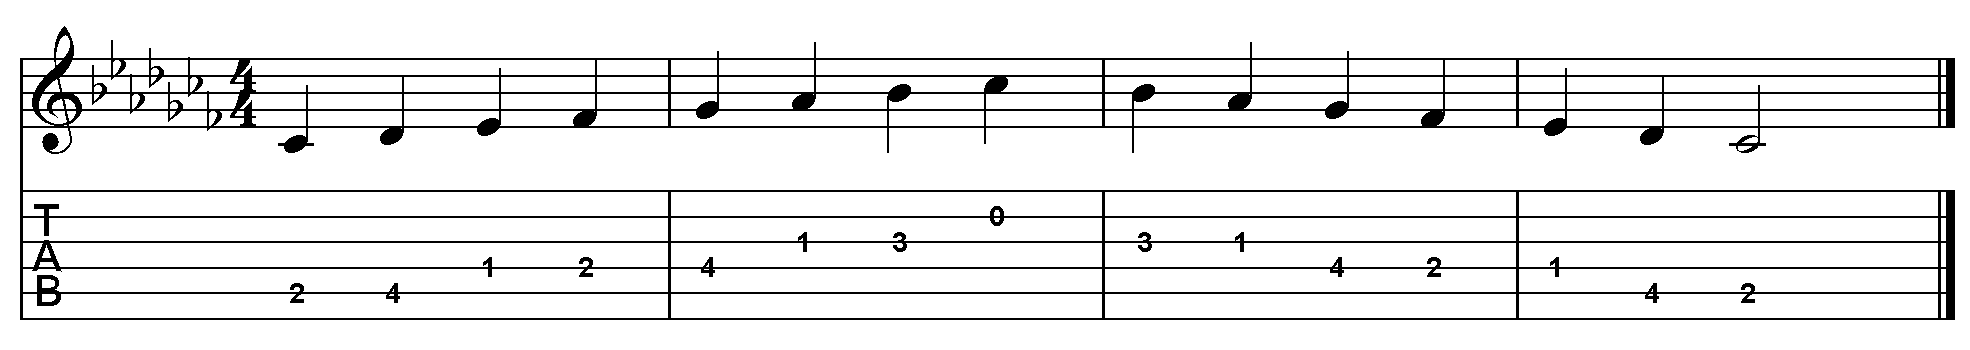 File:C flat major scale one octave (open position).png ... C Flat Major Scale